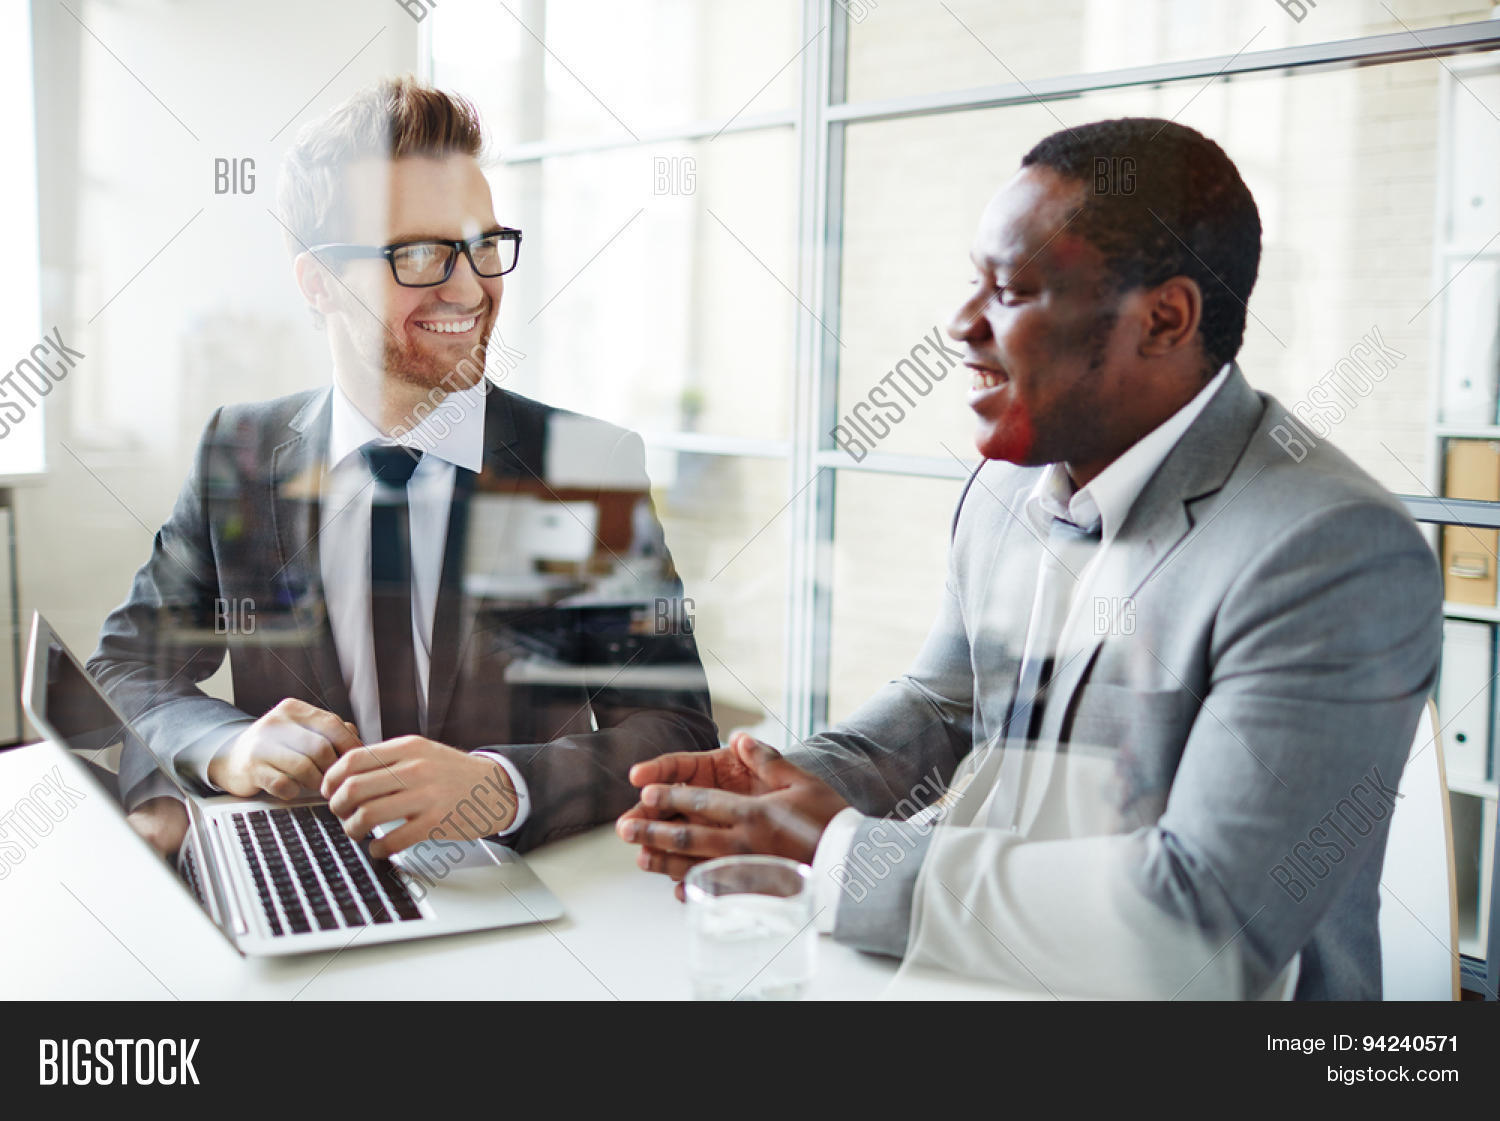 thesis consulting Dissertation & thesis consulting services from the stats team we offer quick, ethical, and accurate advice and support for your dissertation or thesis we can help you design your study.